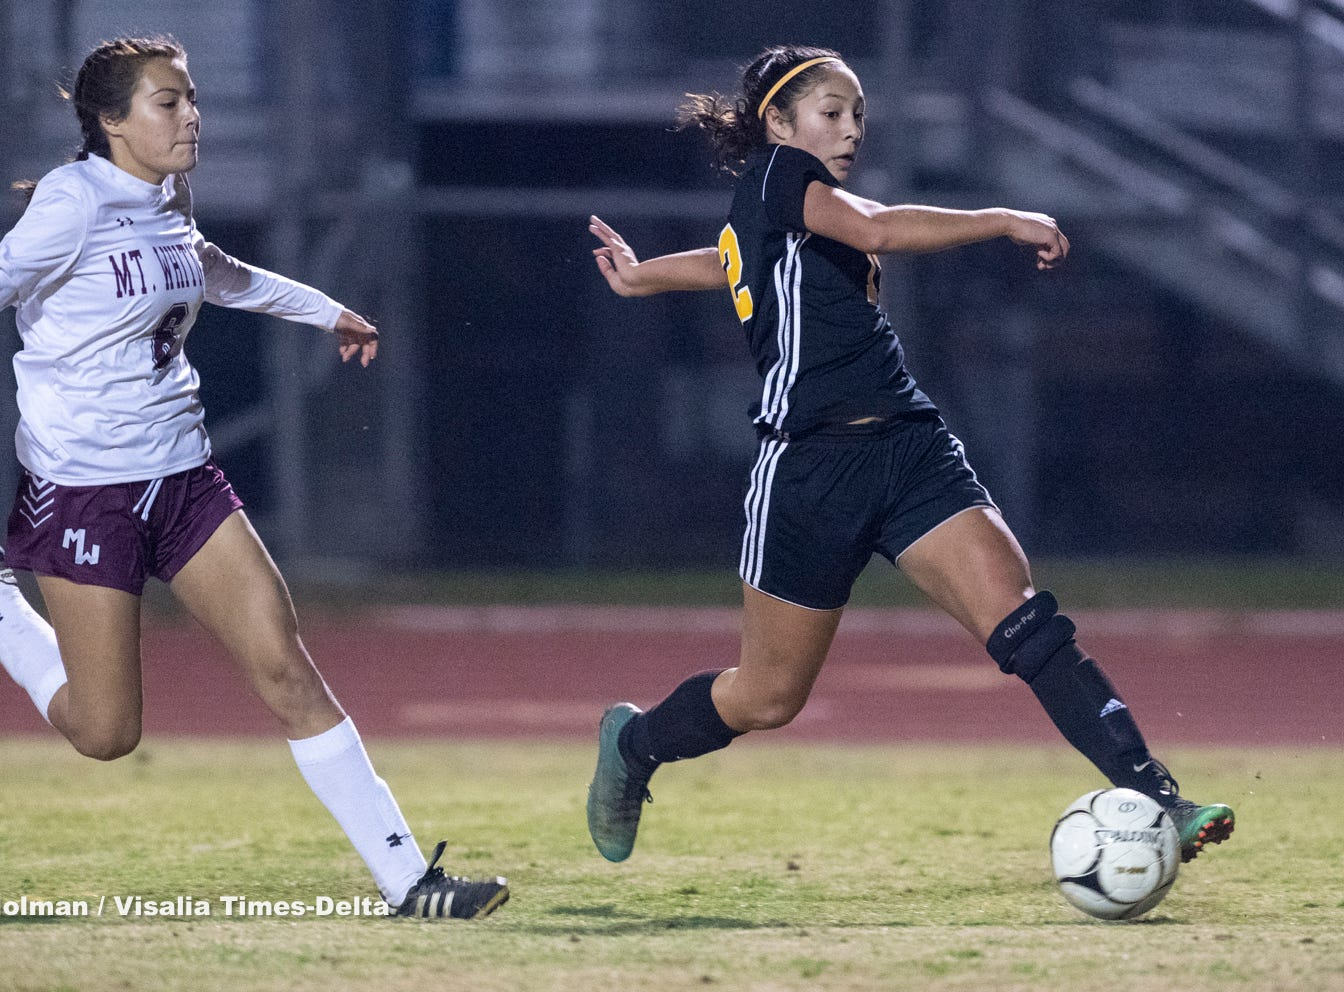 Golden West'sSerina Oceguera (12) attempts a shot on goal against Mt. Whitney in a girls soccer game on Wednesday, January 23, 2019.